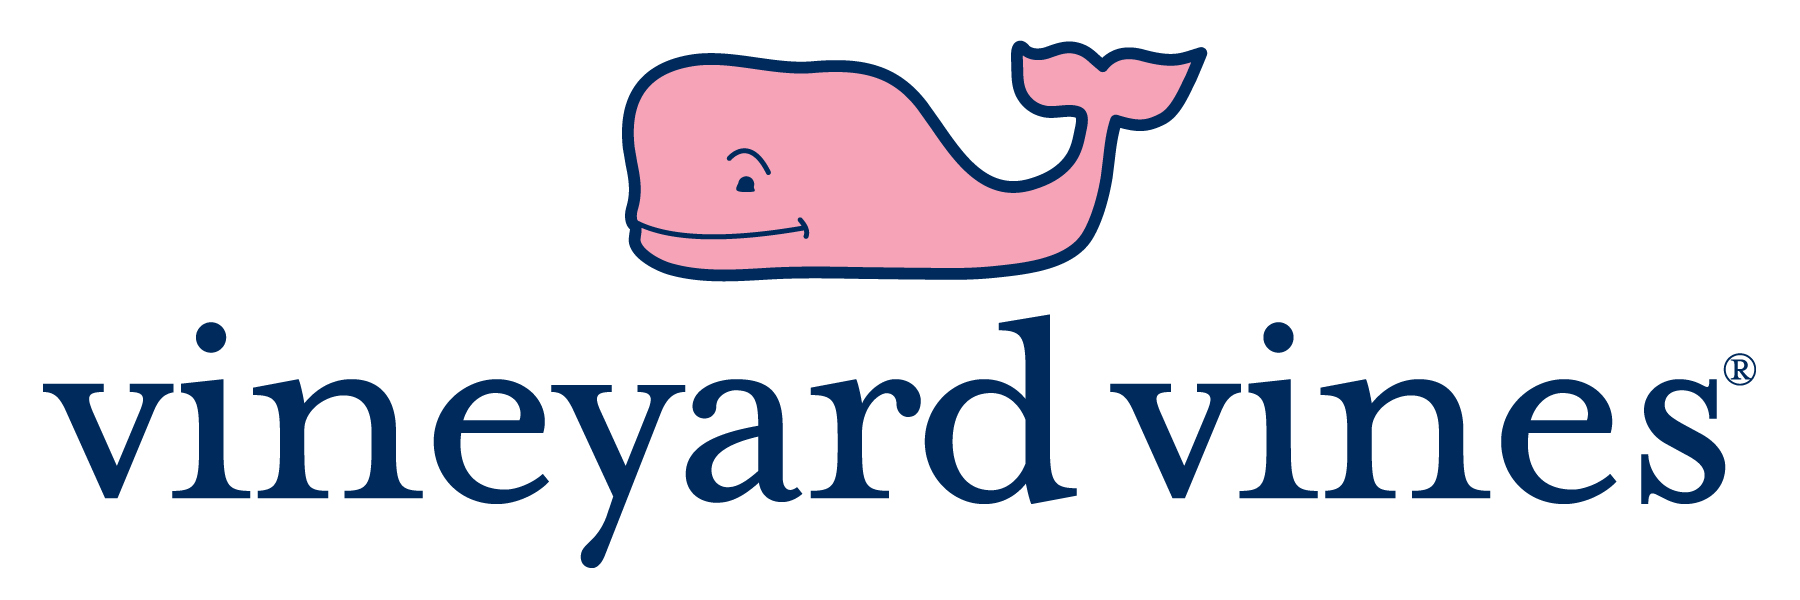 logo_vineyardvines.jpg